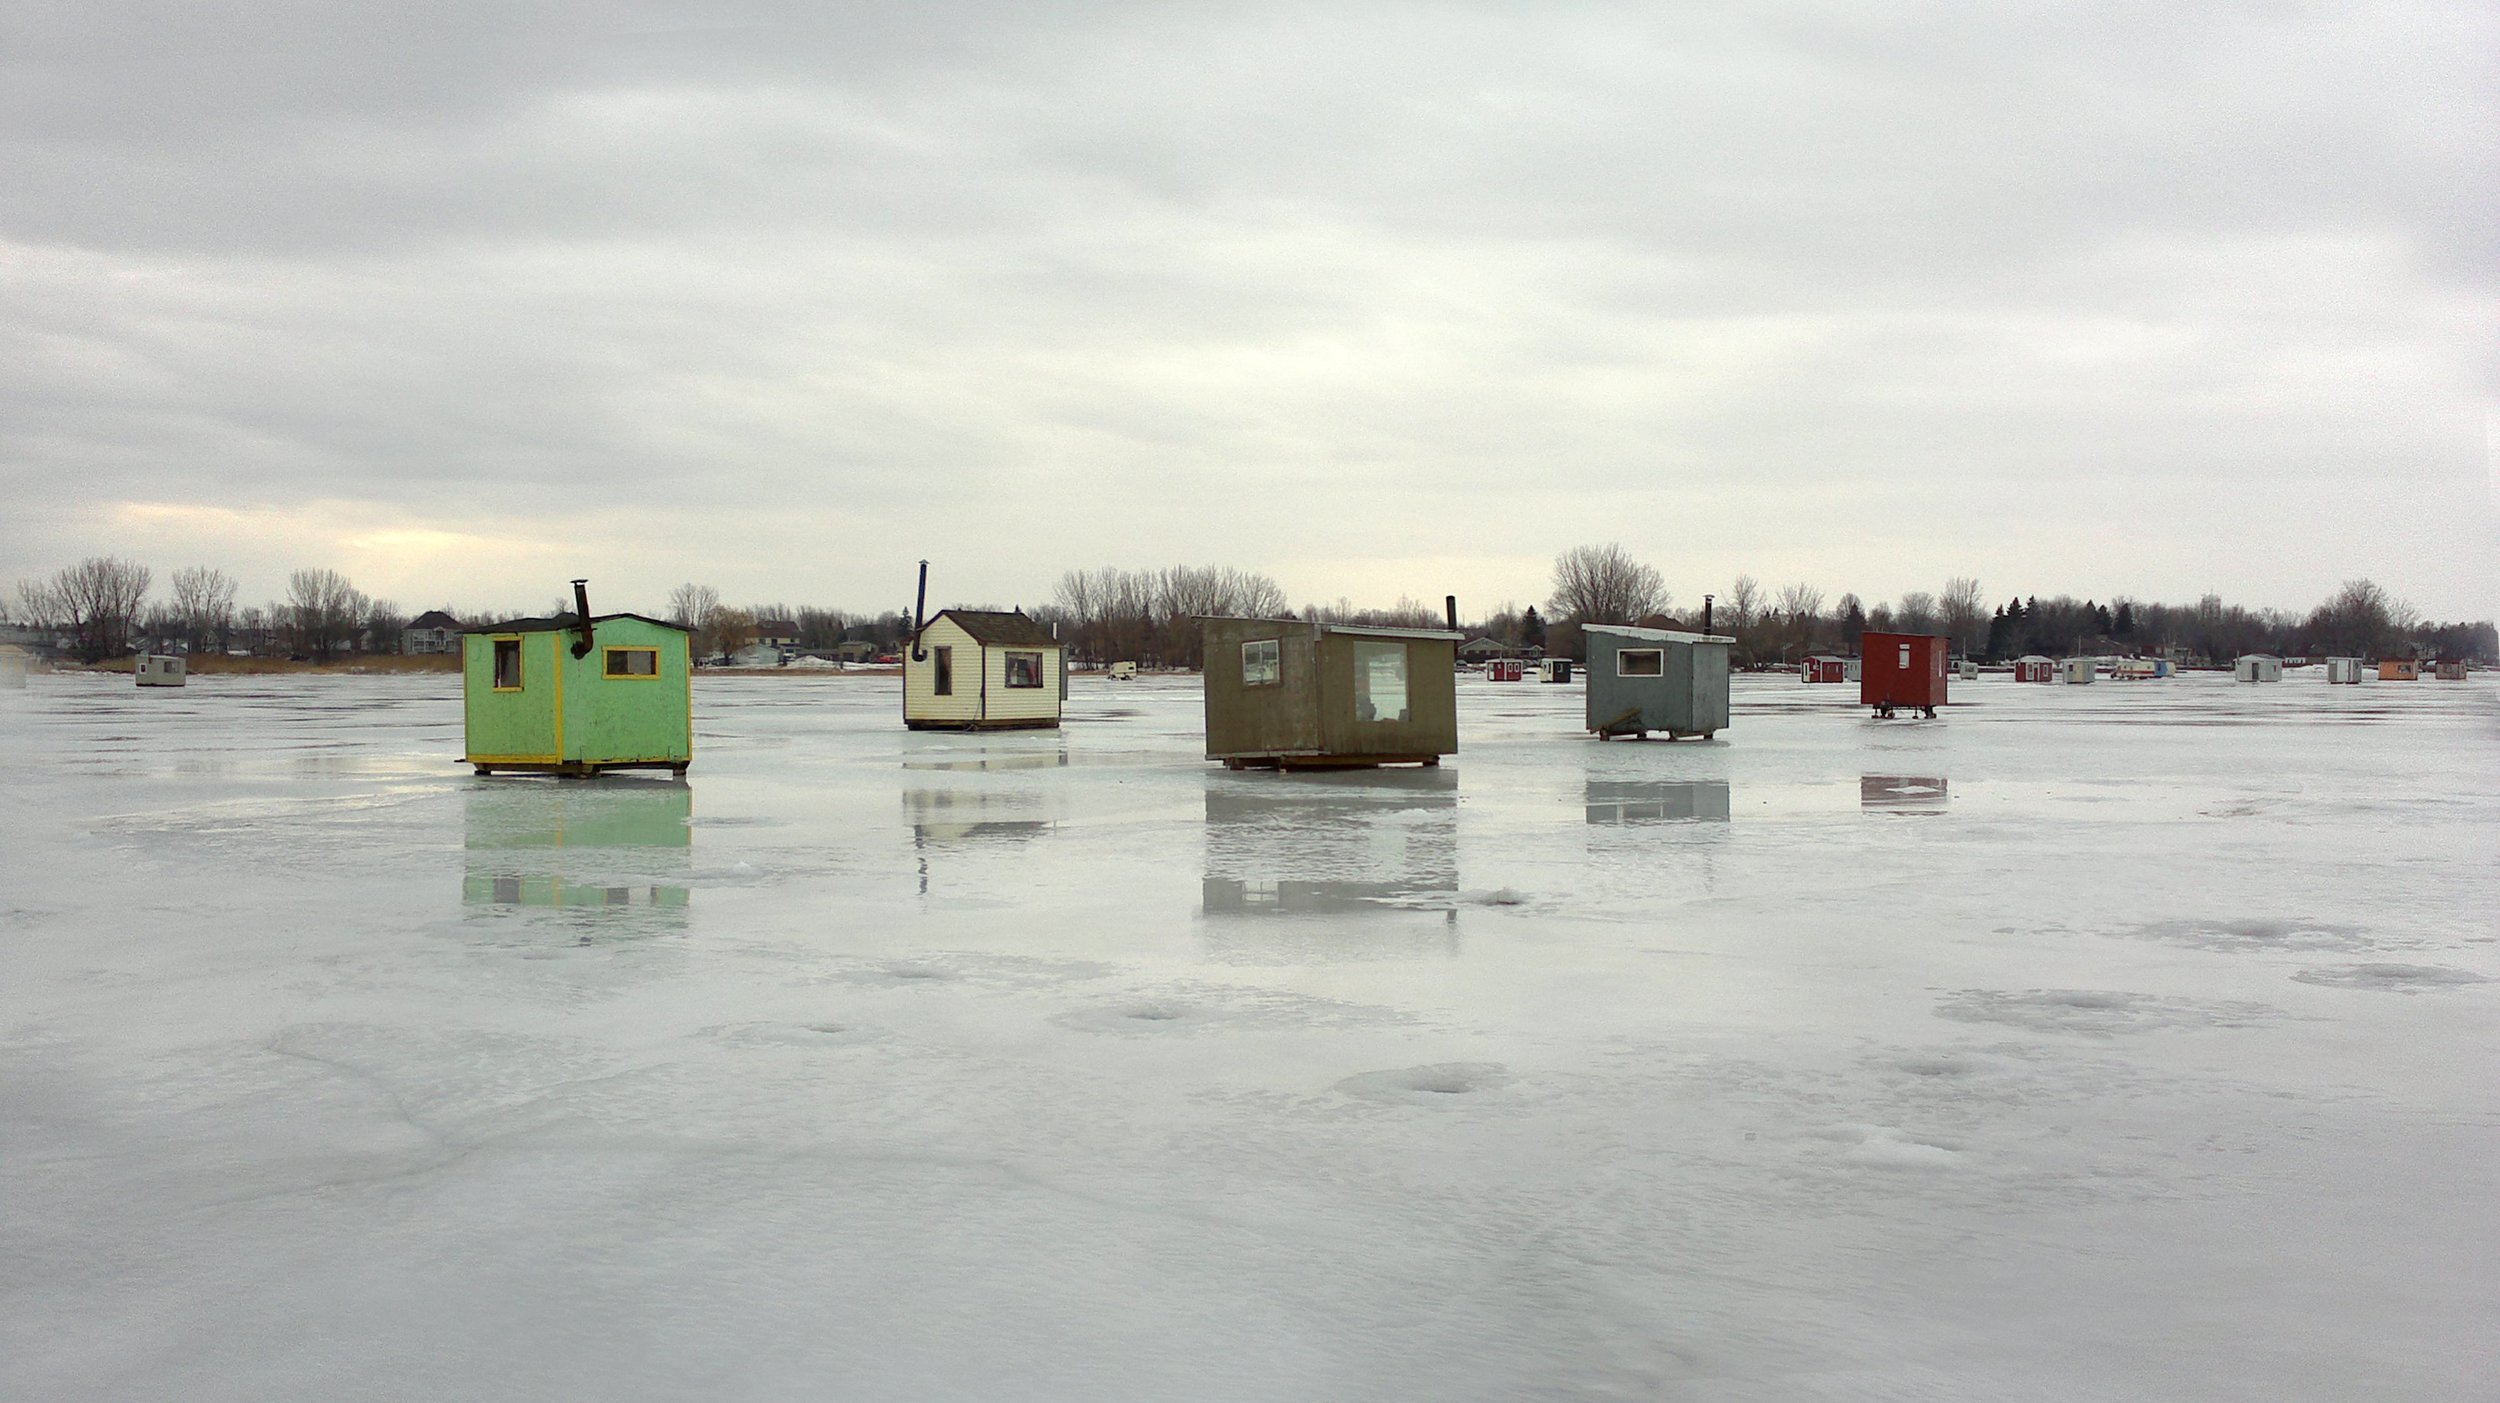 ice-fishing-huts-1011670.jpg